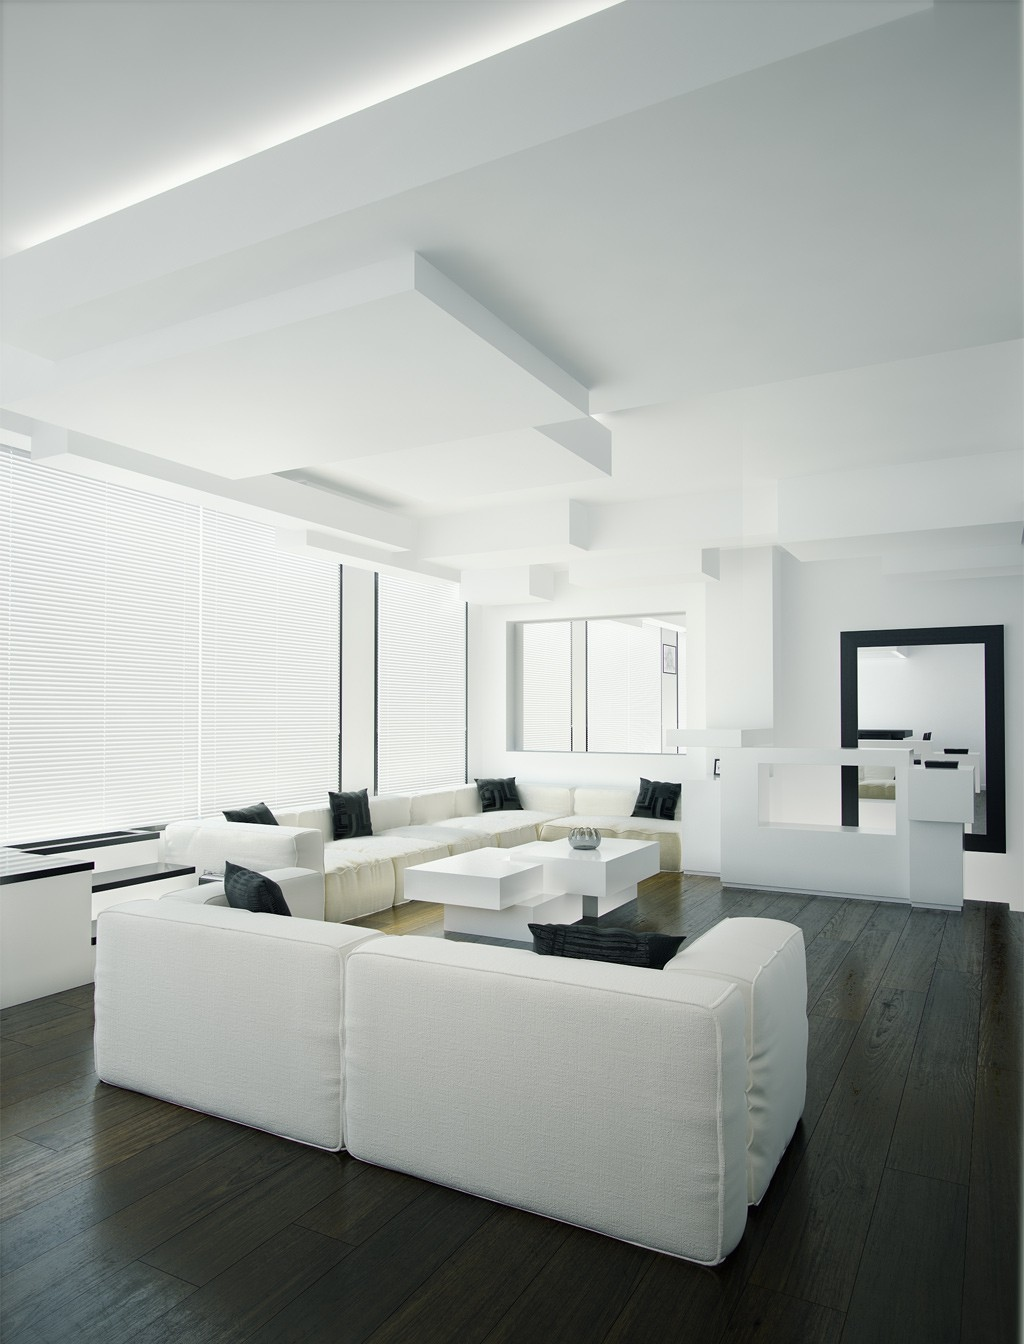 White and black living room interior design ideas White and black modern living room